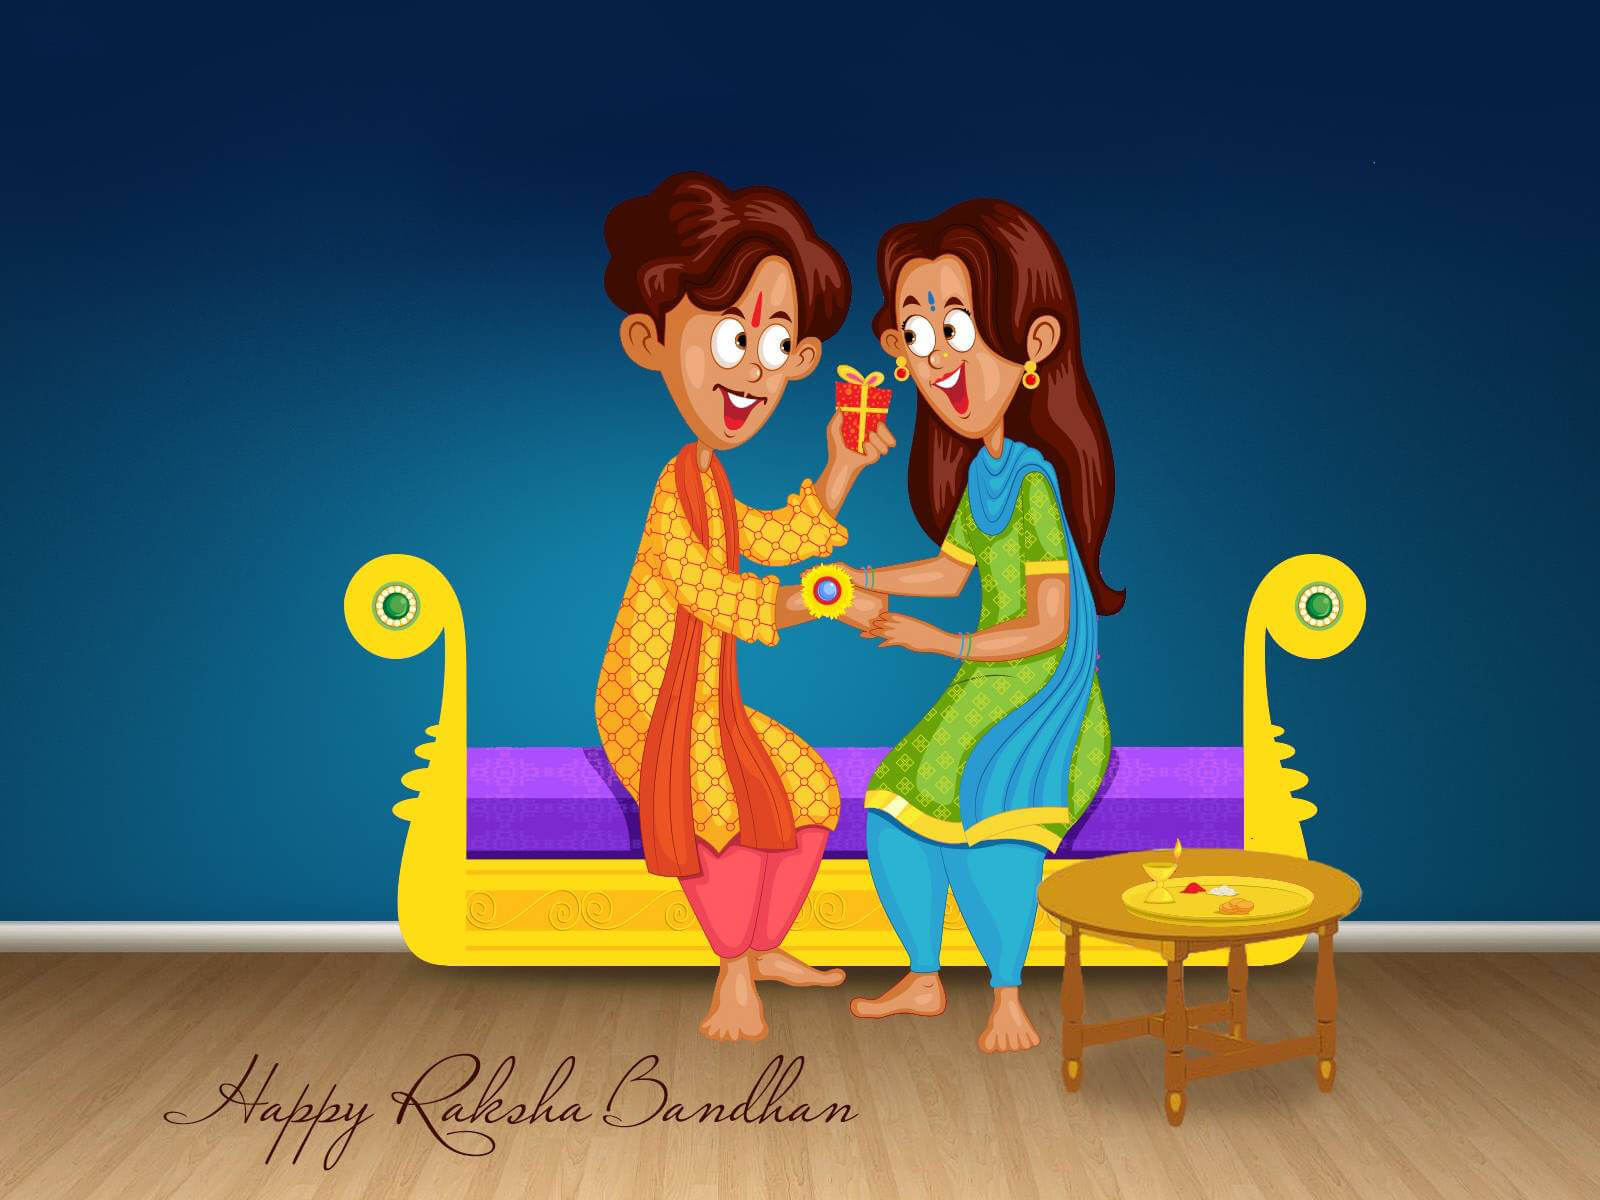 happy raksha bandhan hd cartoon wallpaper